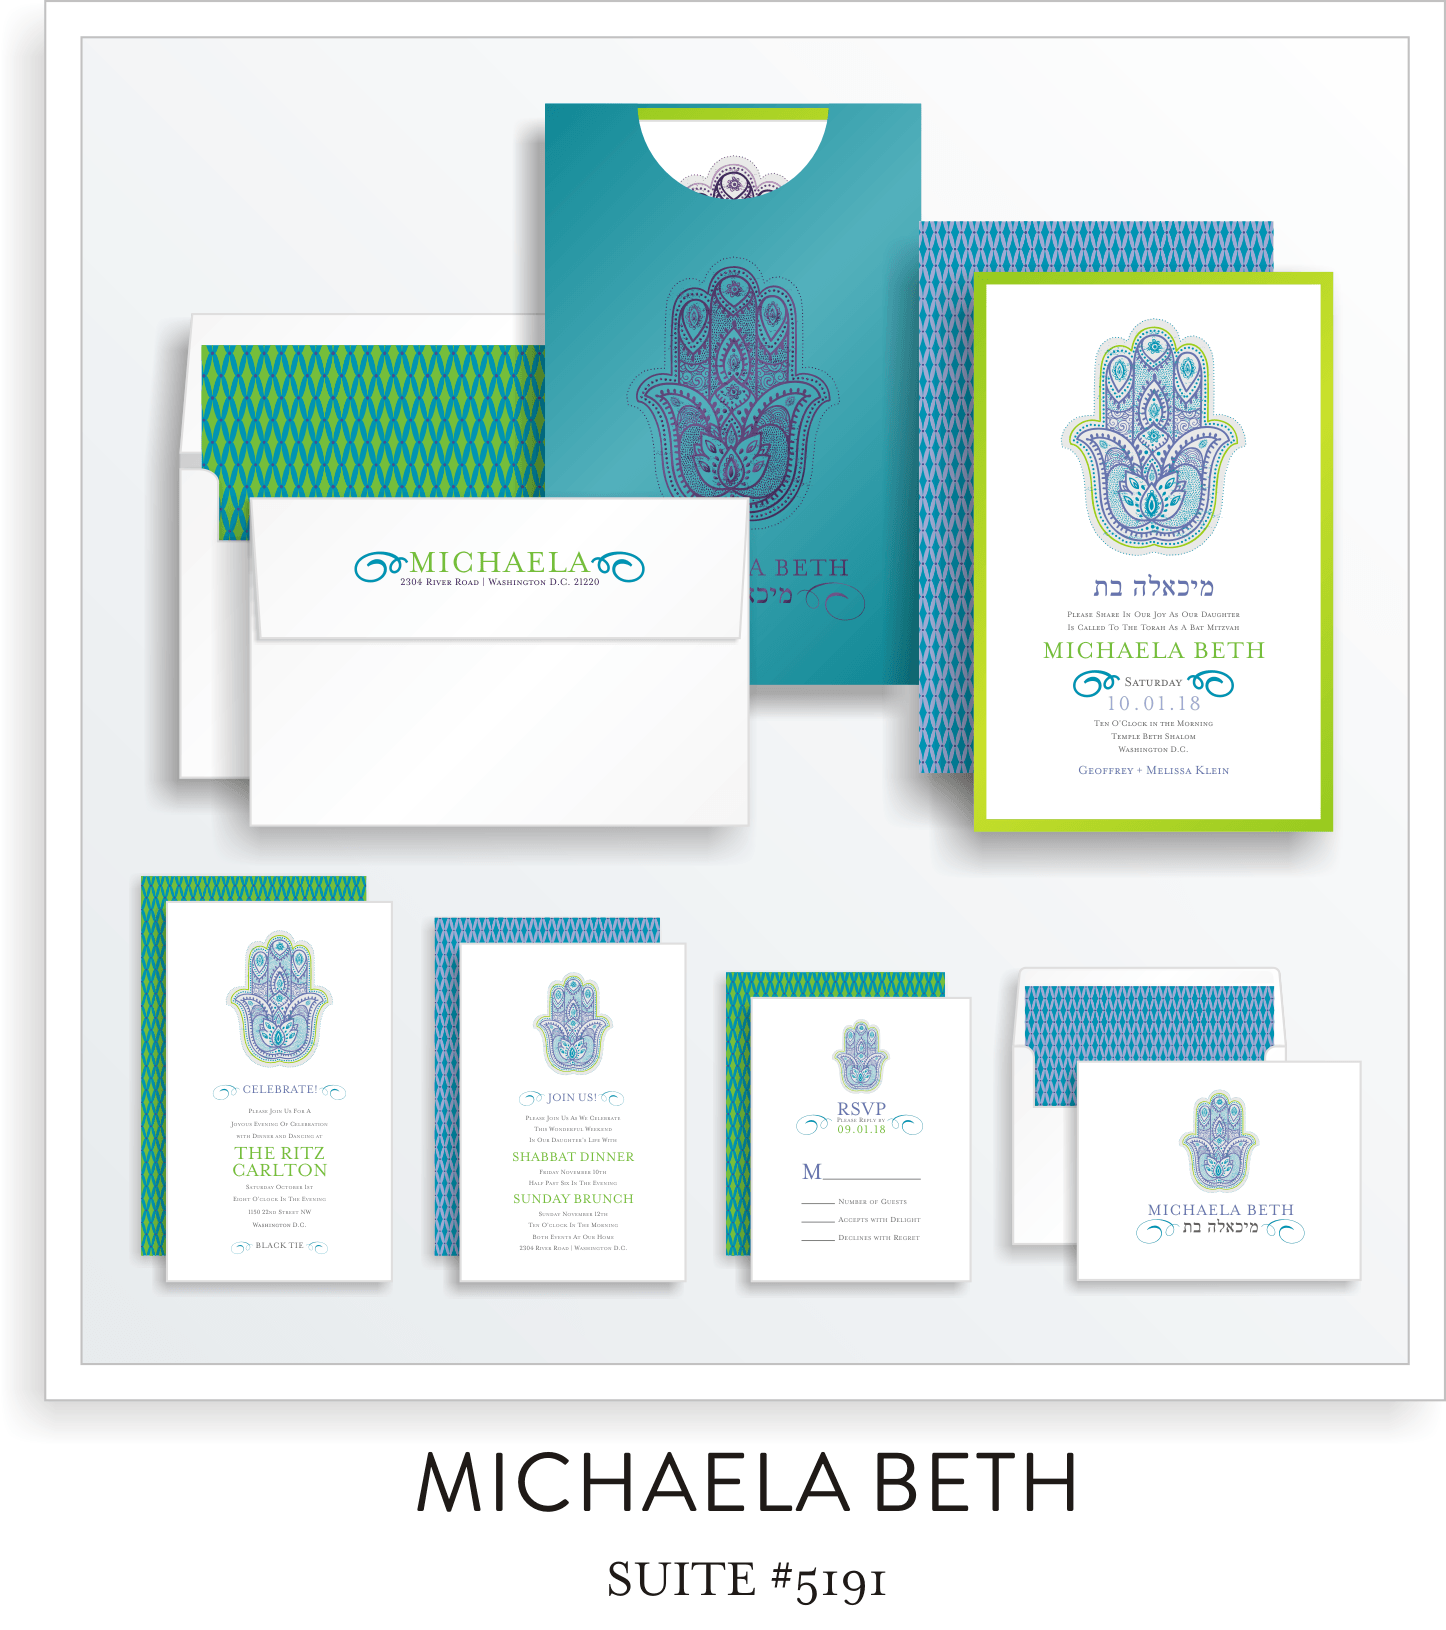 Copy of Bat Mitzvah Invitation 5191 - Michaela Beth